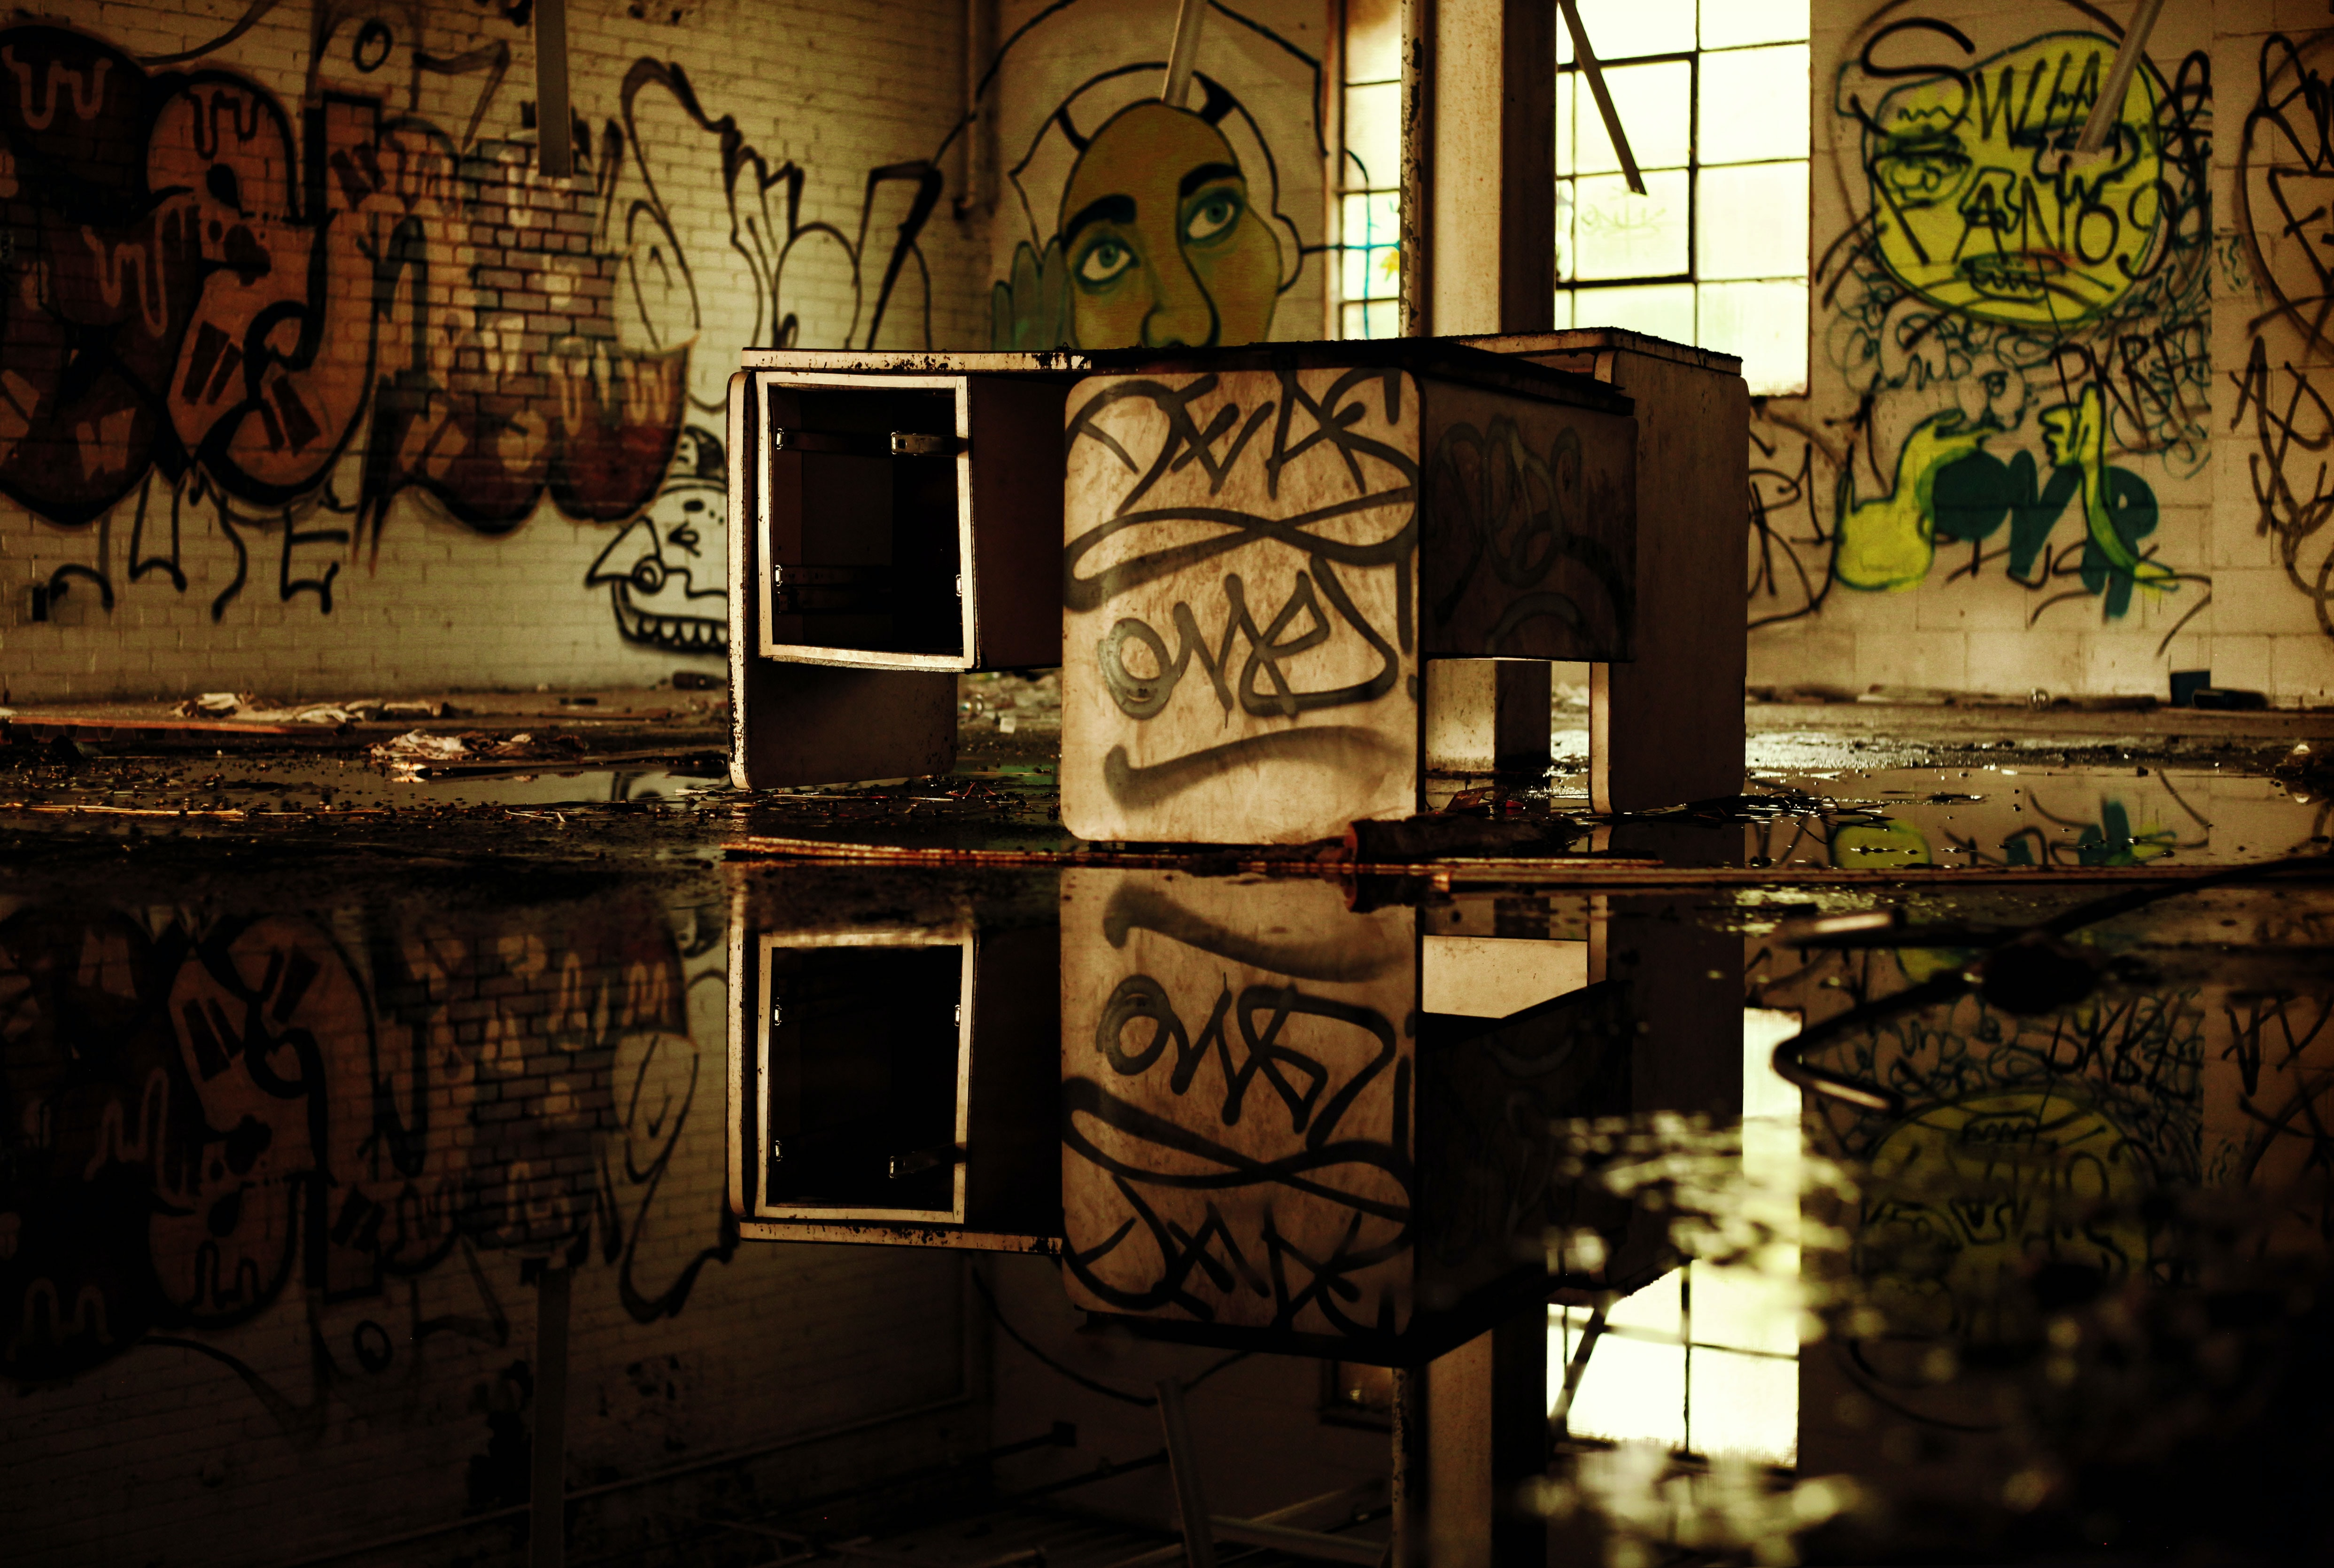 A dilapidated desk on a wet floor in an abandoned building with graffiti on its walls